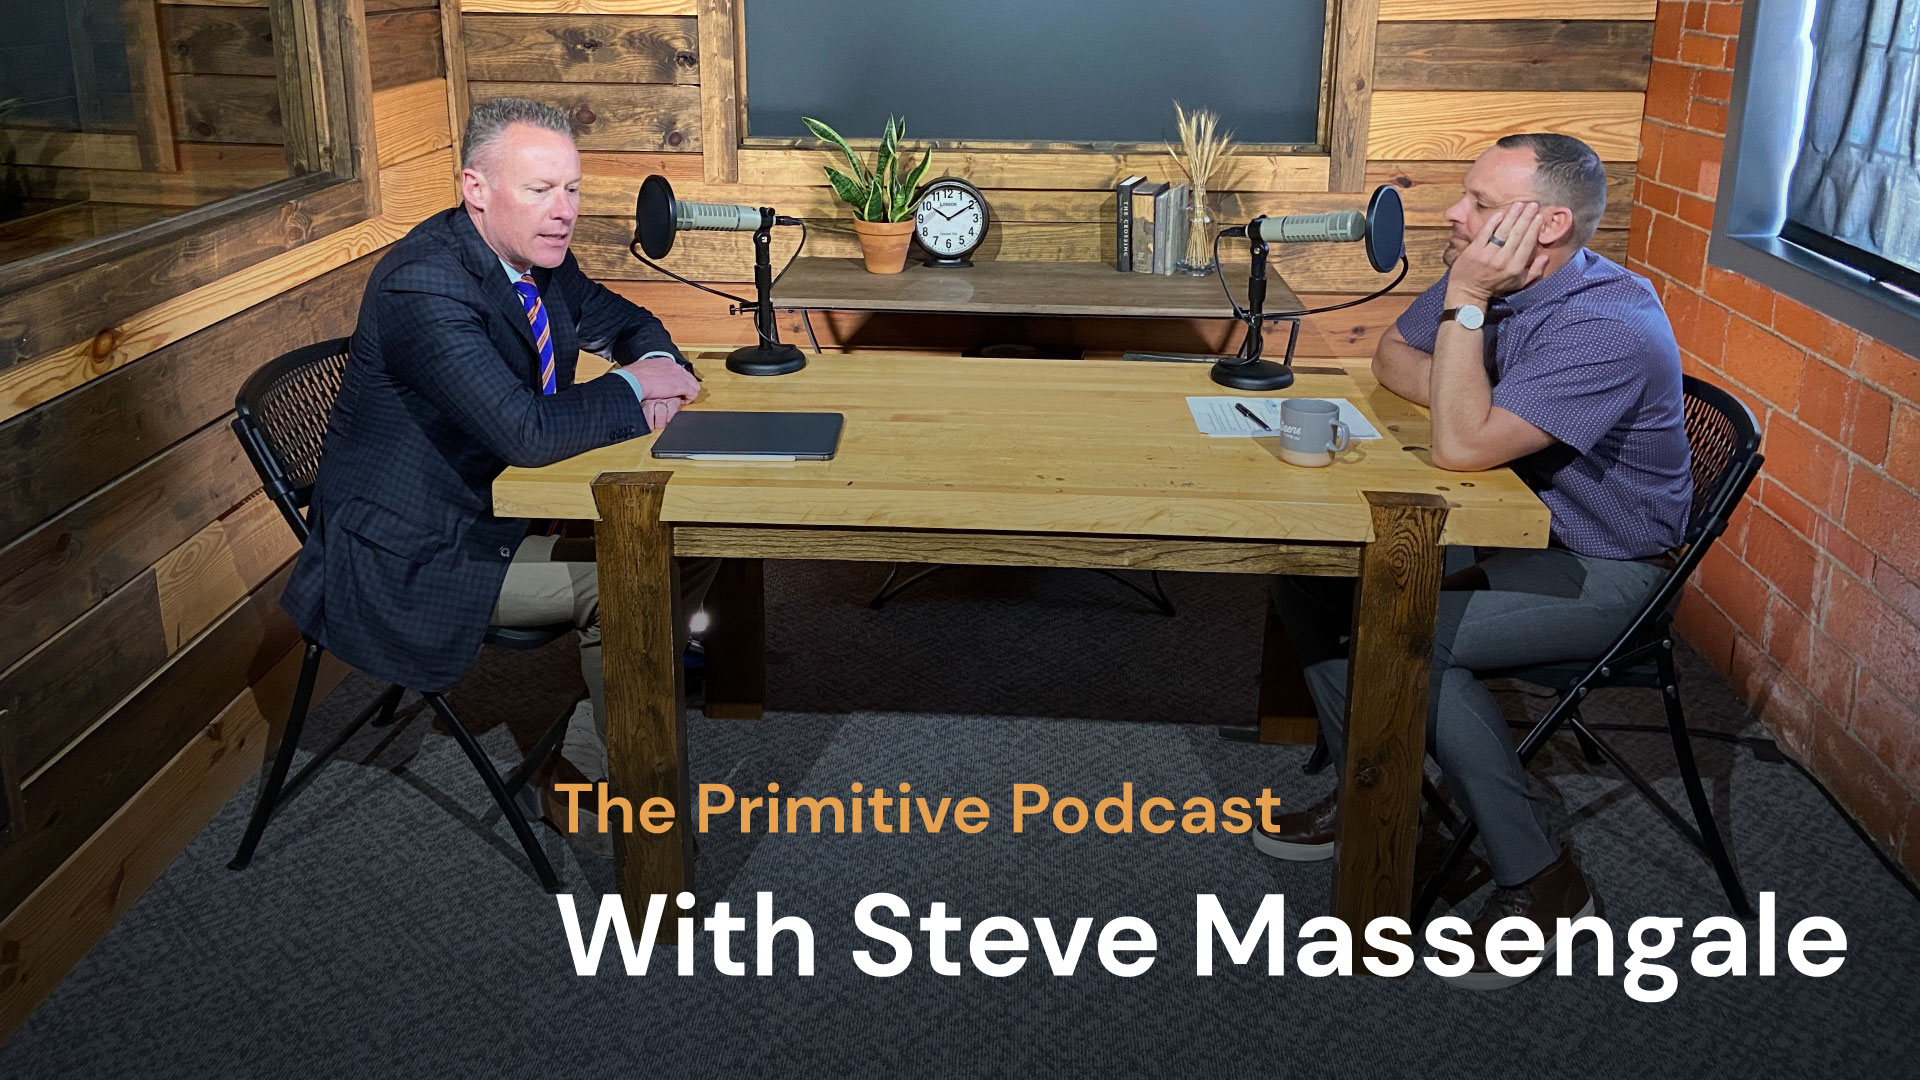 The Primitive Podcast: Steve Massengale